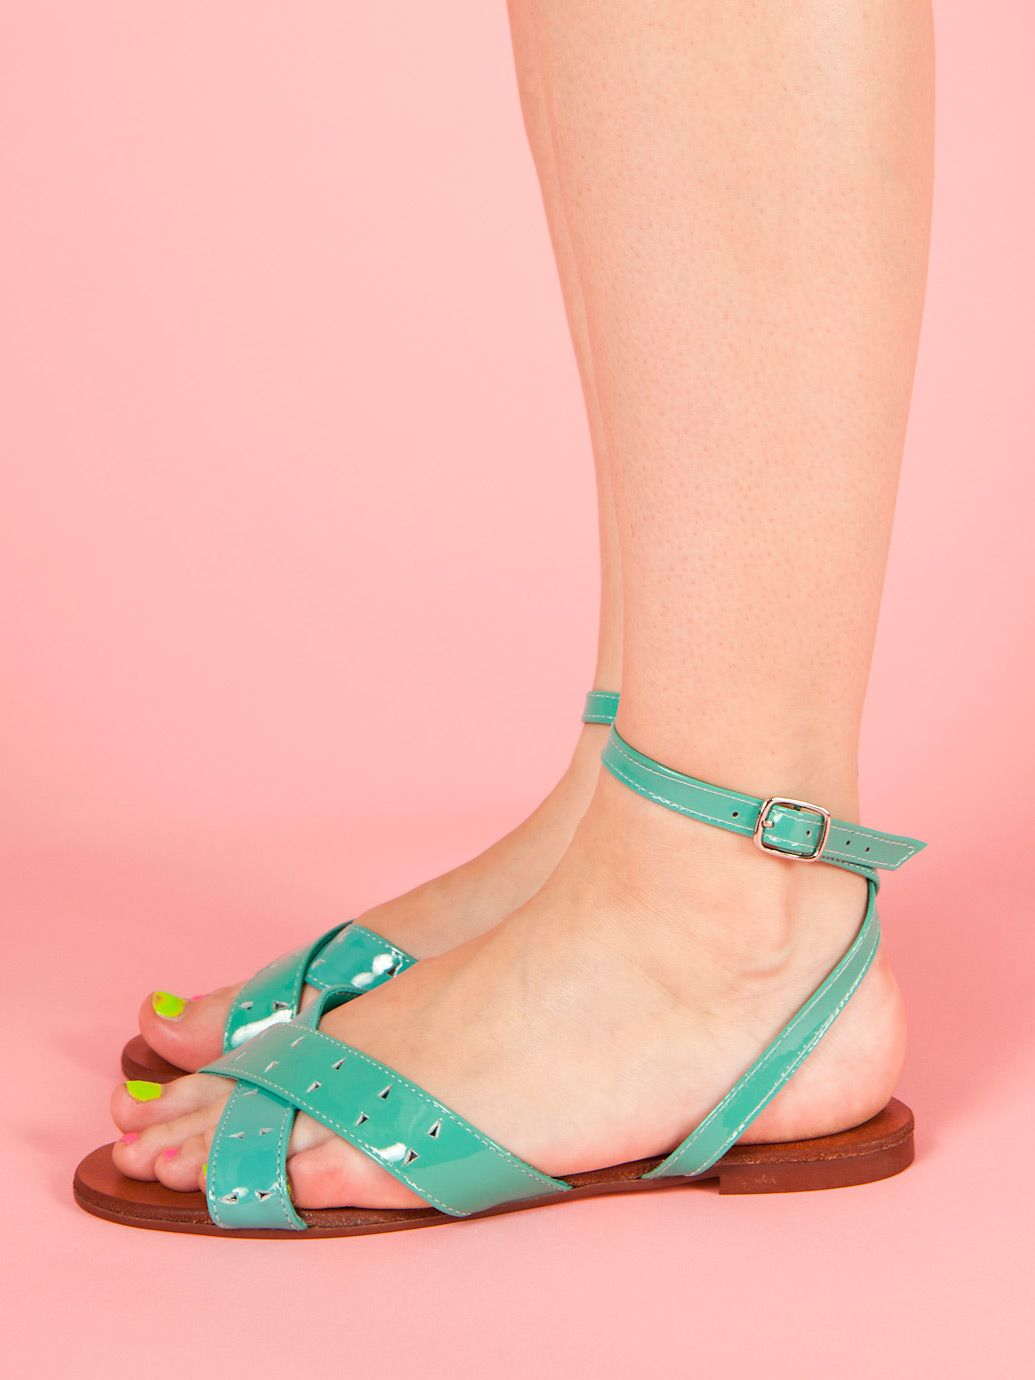 Leather Criss Cross Flat Sandal in Turquoise by #AmericanApparel.  #shoes #sandals #turquoise #accessories